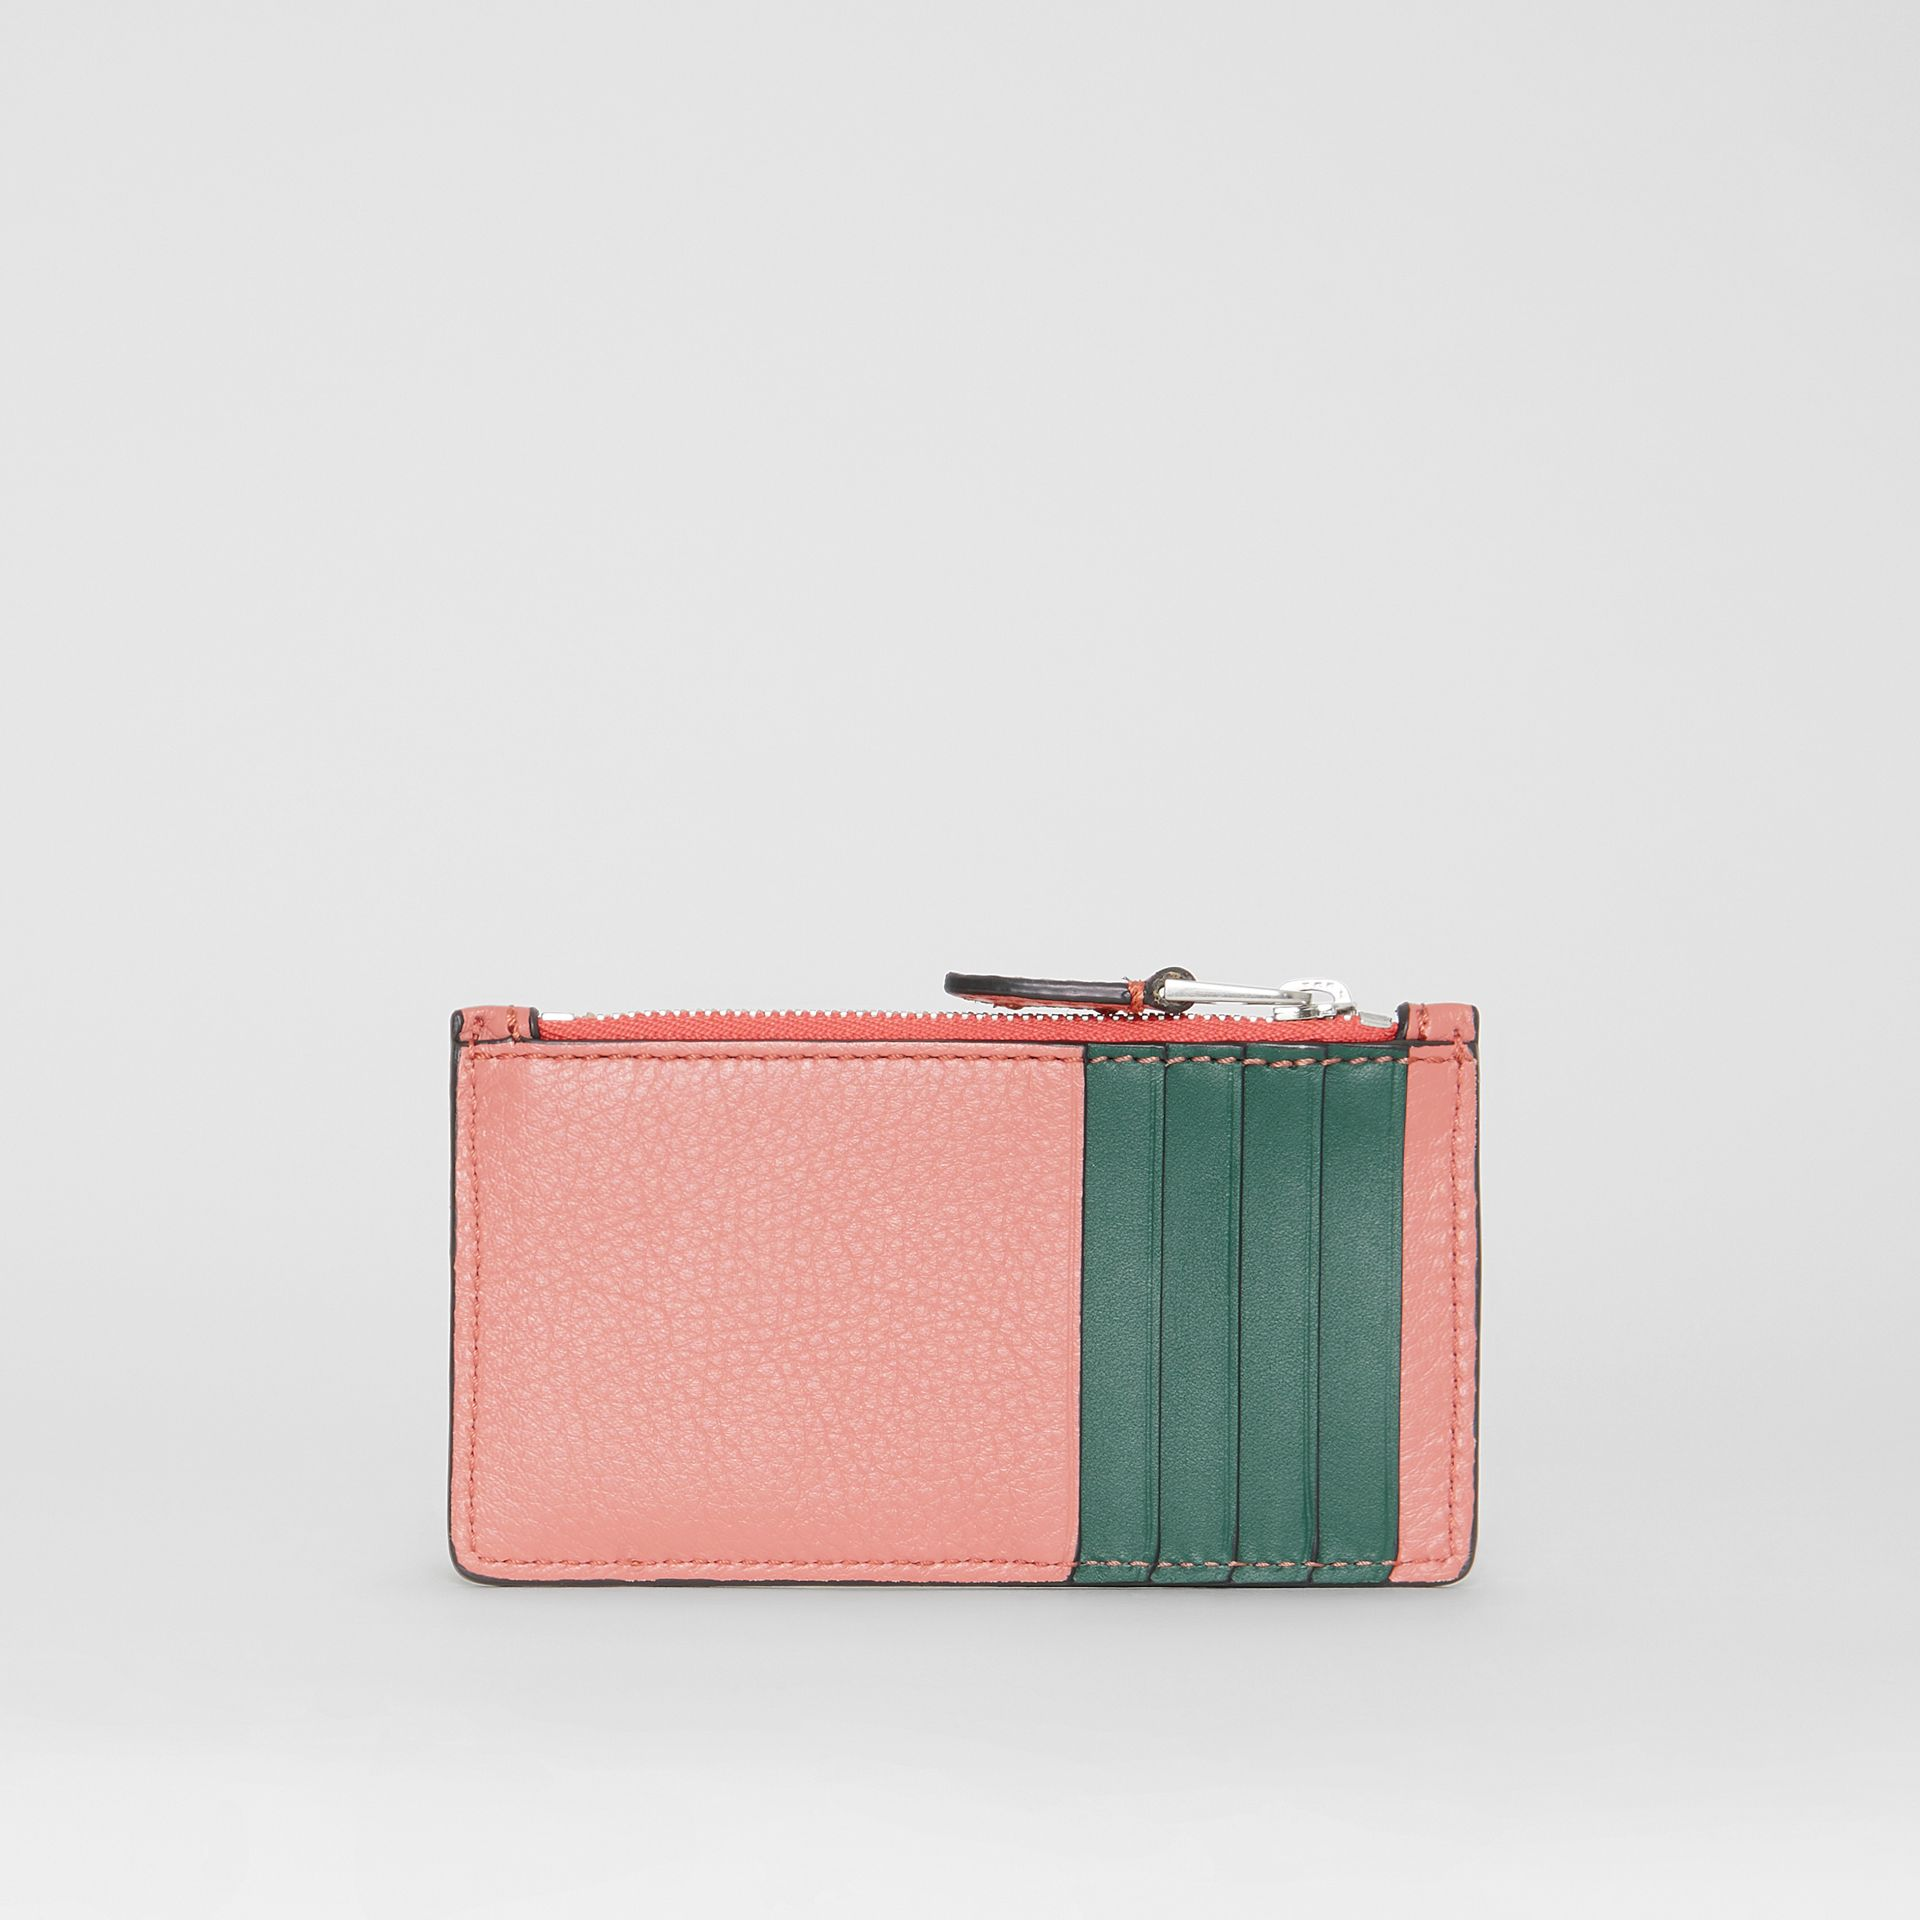 Two-tone Leather Zip Card Case in Dusty Rose - Women | Burberry Australia - gallery image 4